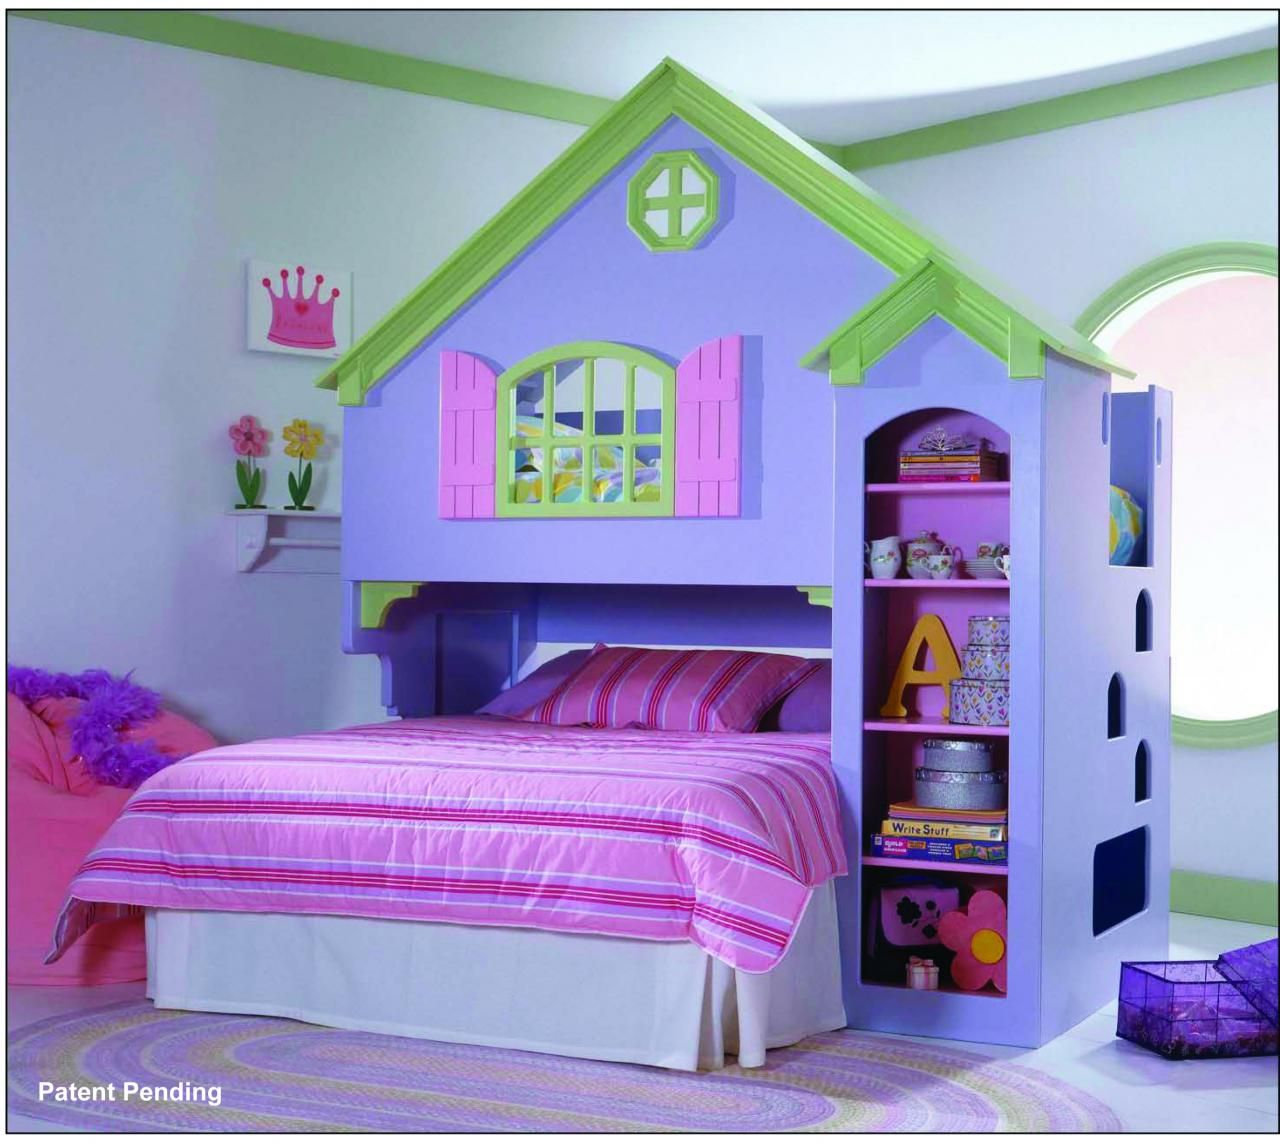 Kids Bedroom Beds little+girls+loft+bedroom | details about childrens doll house bed